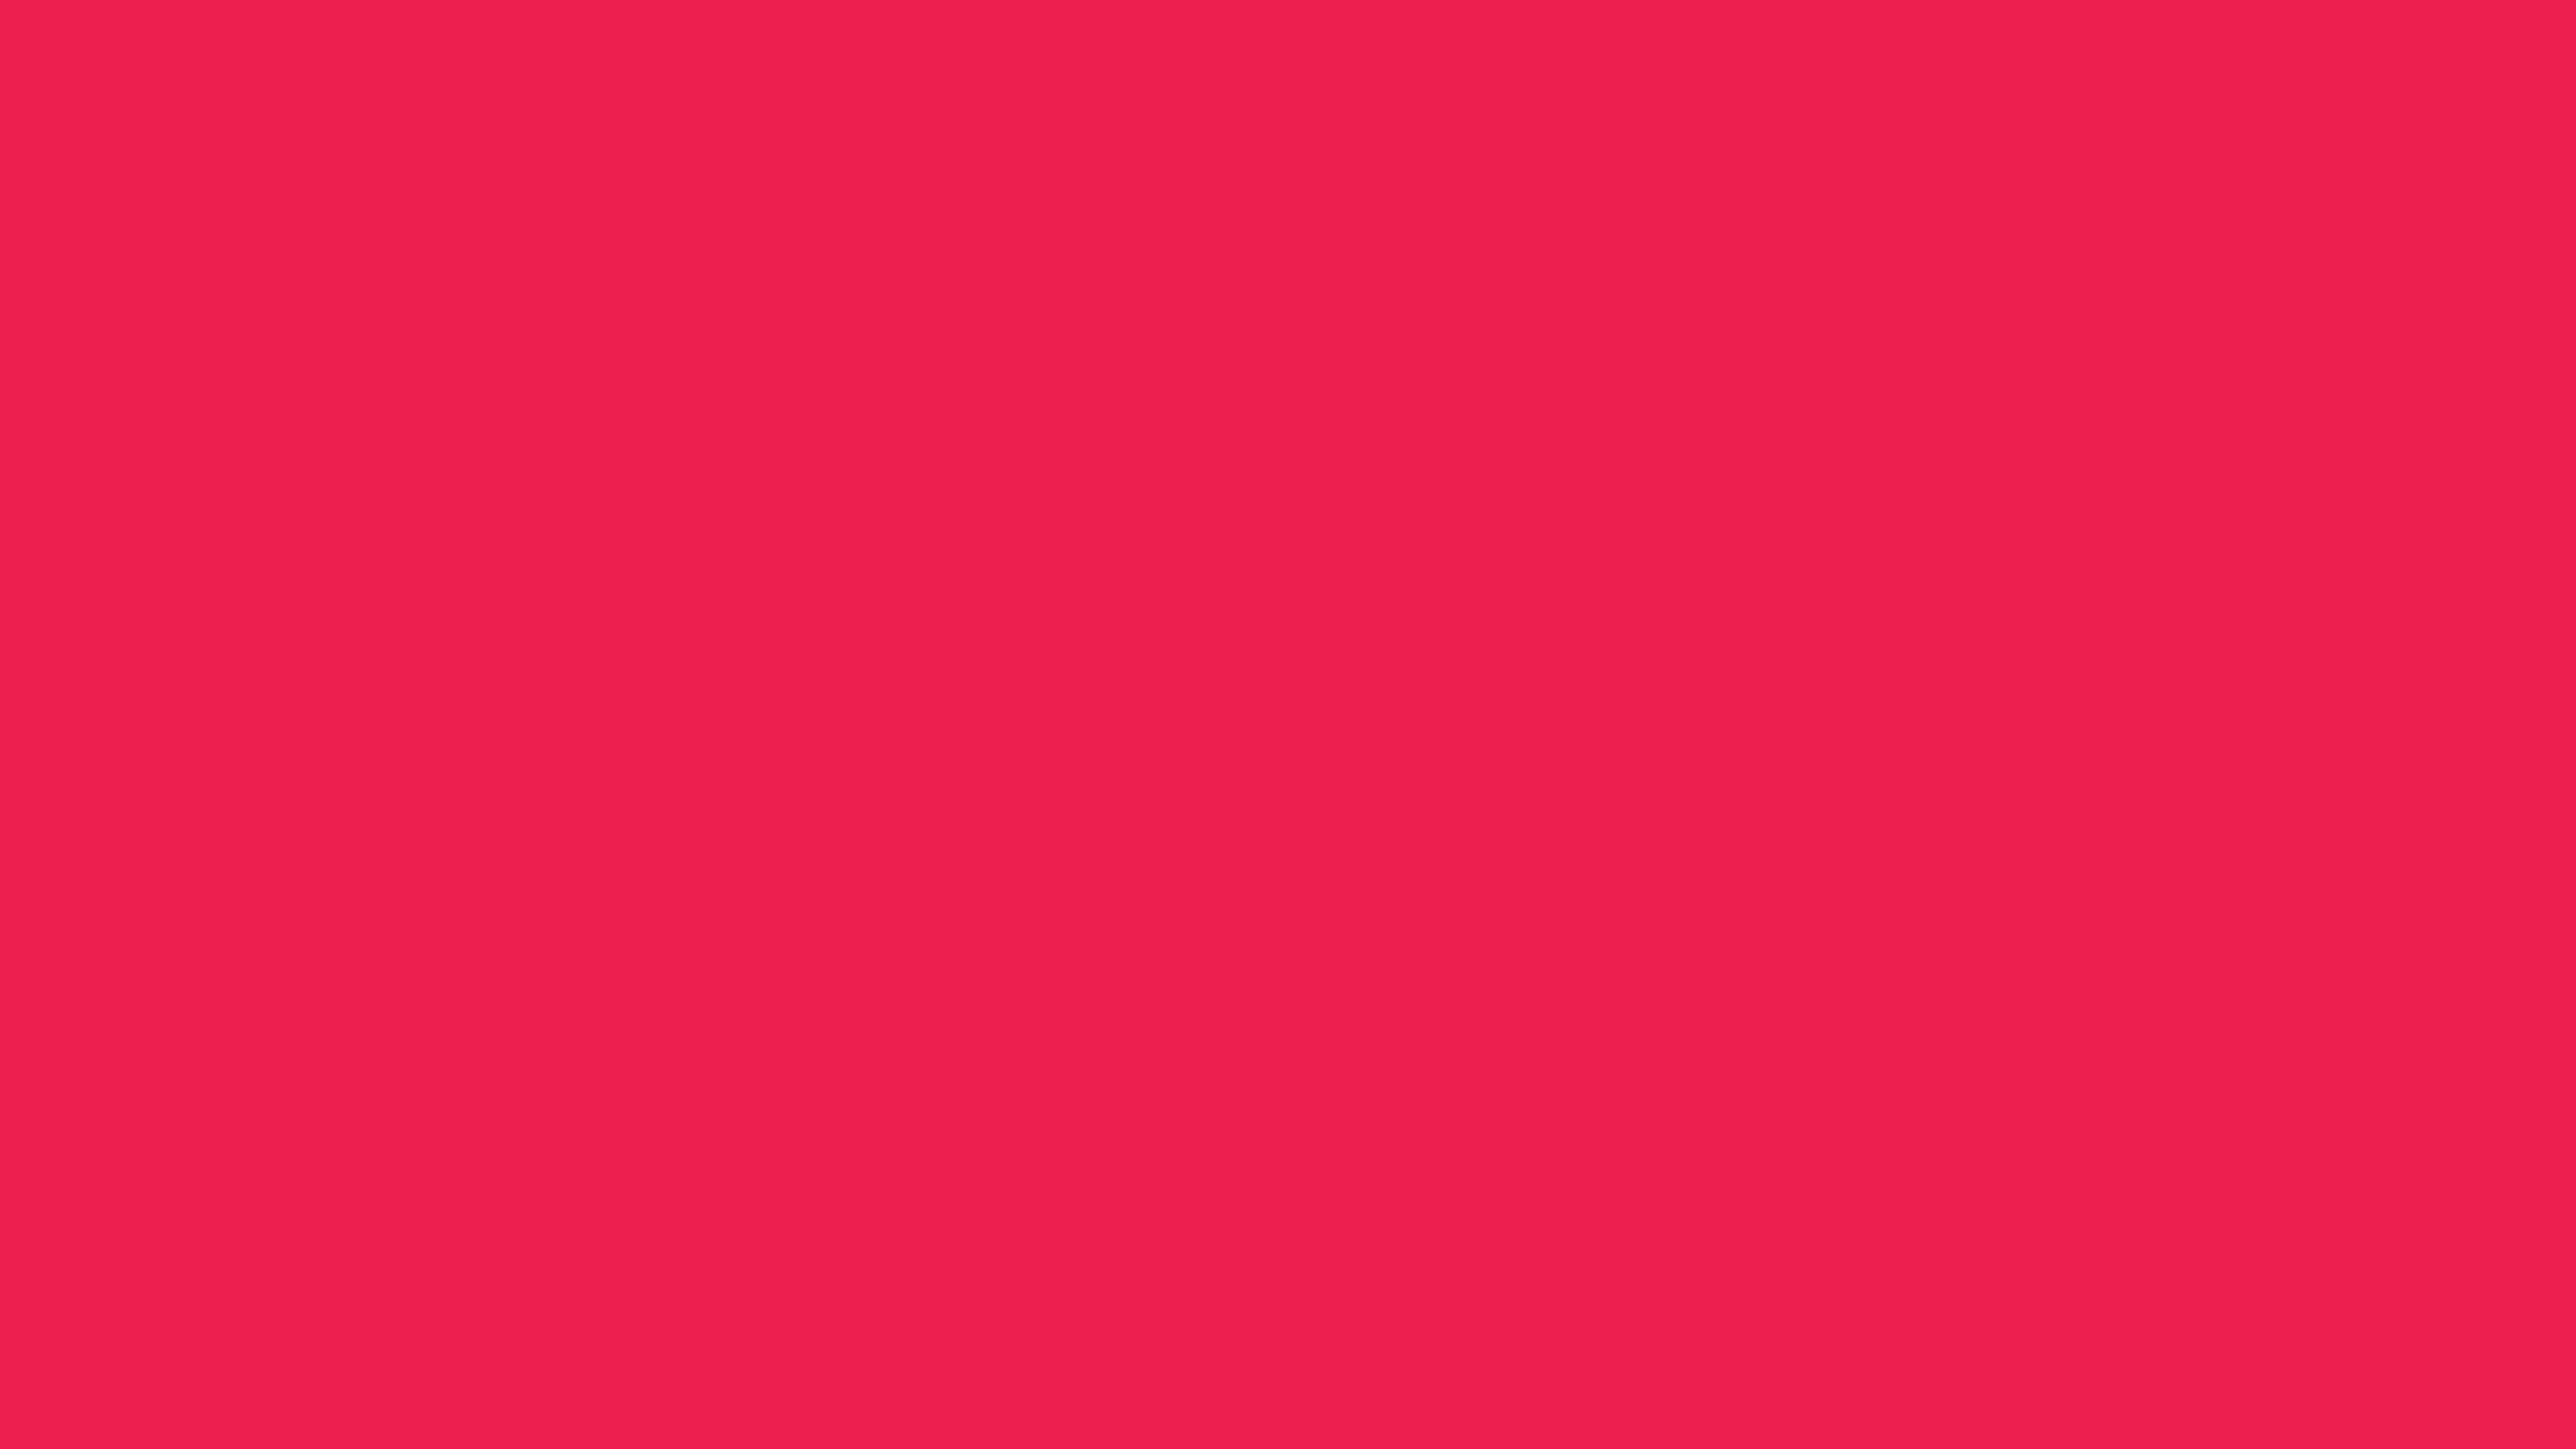 7680x4320 Red Crayola Solid Color Background